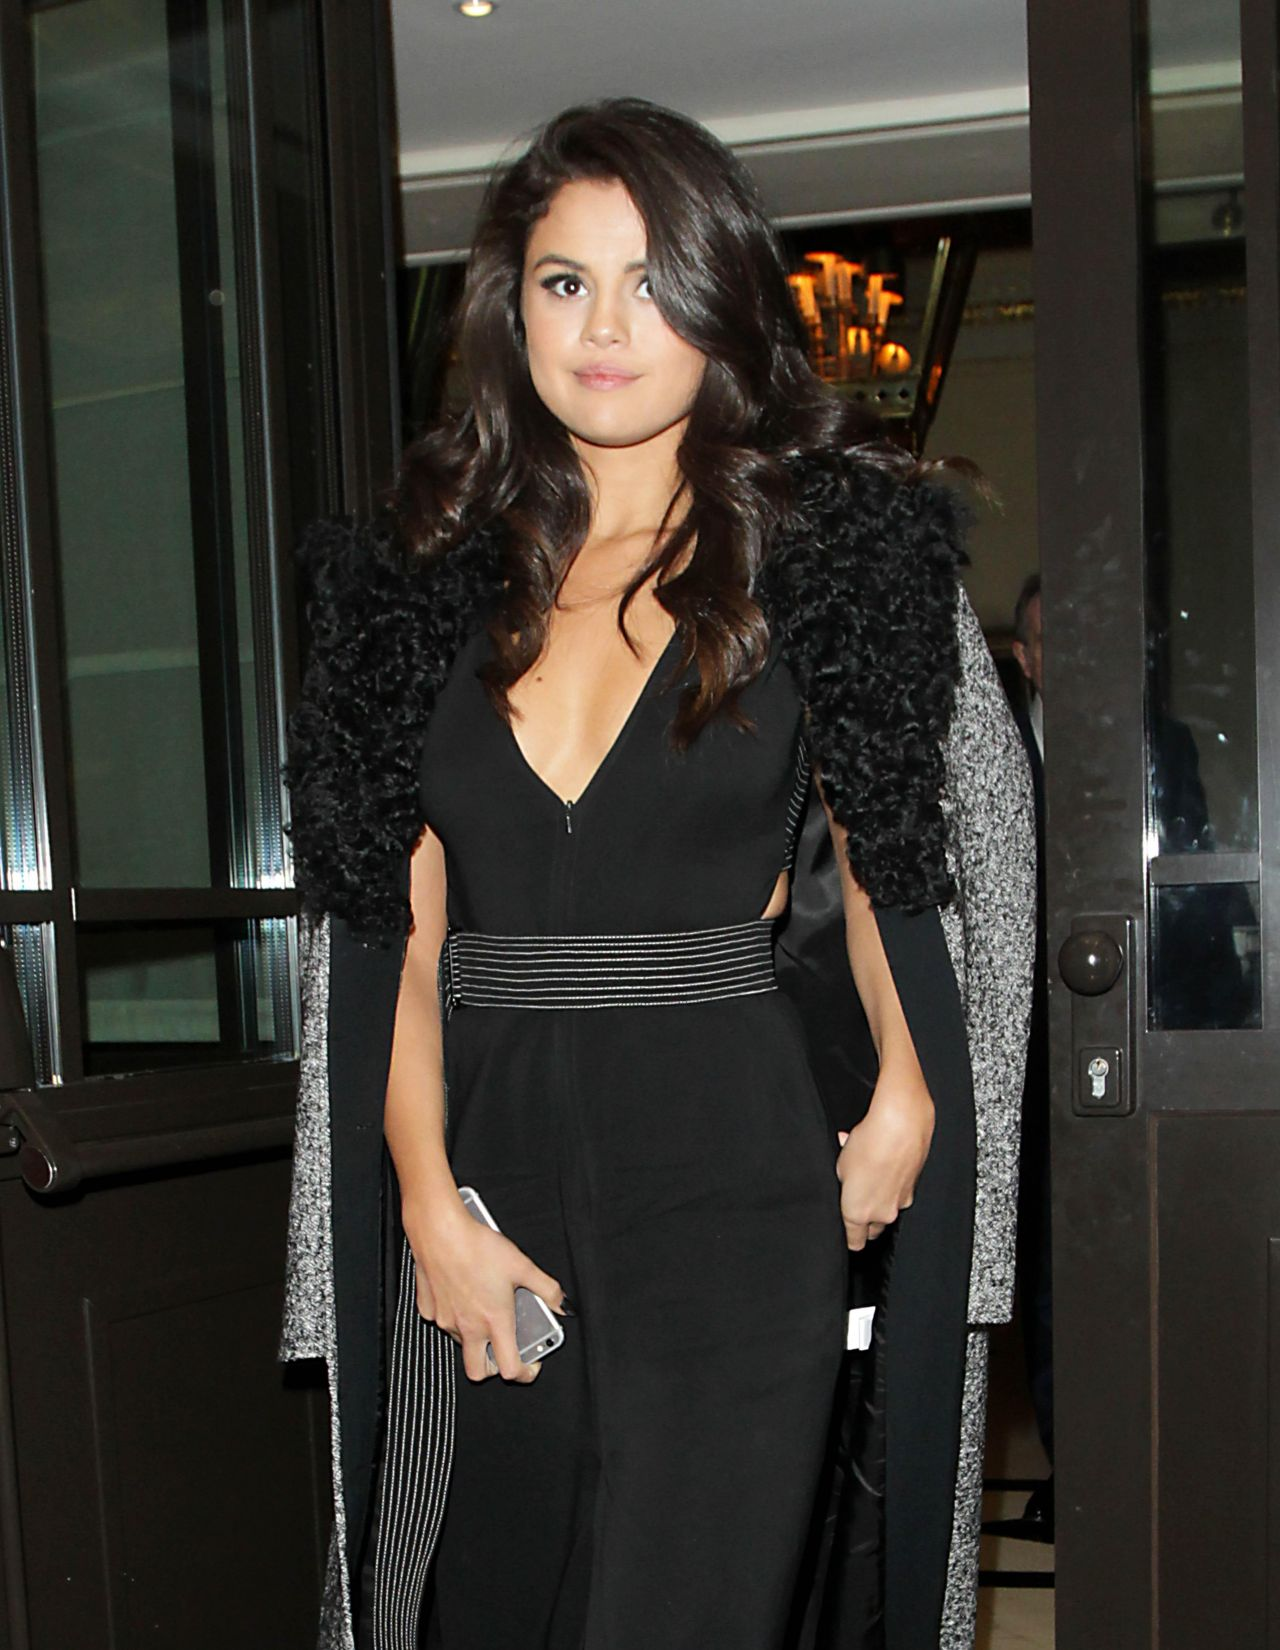 selena-gomez-leaving-the-dorchester-hotel-in-london-september-2015_5